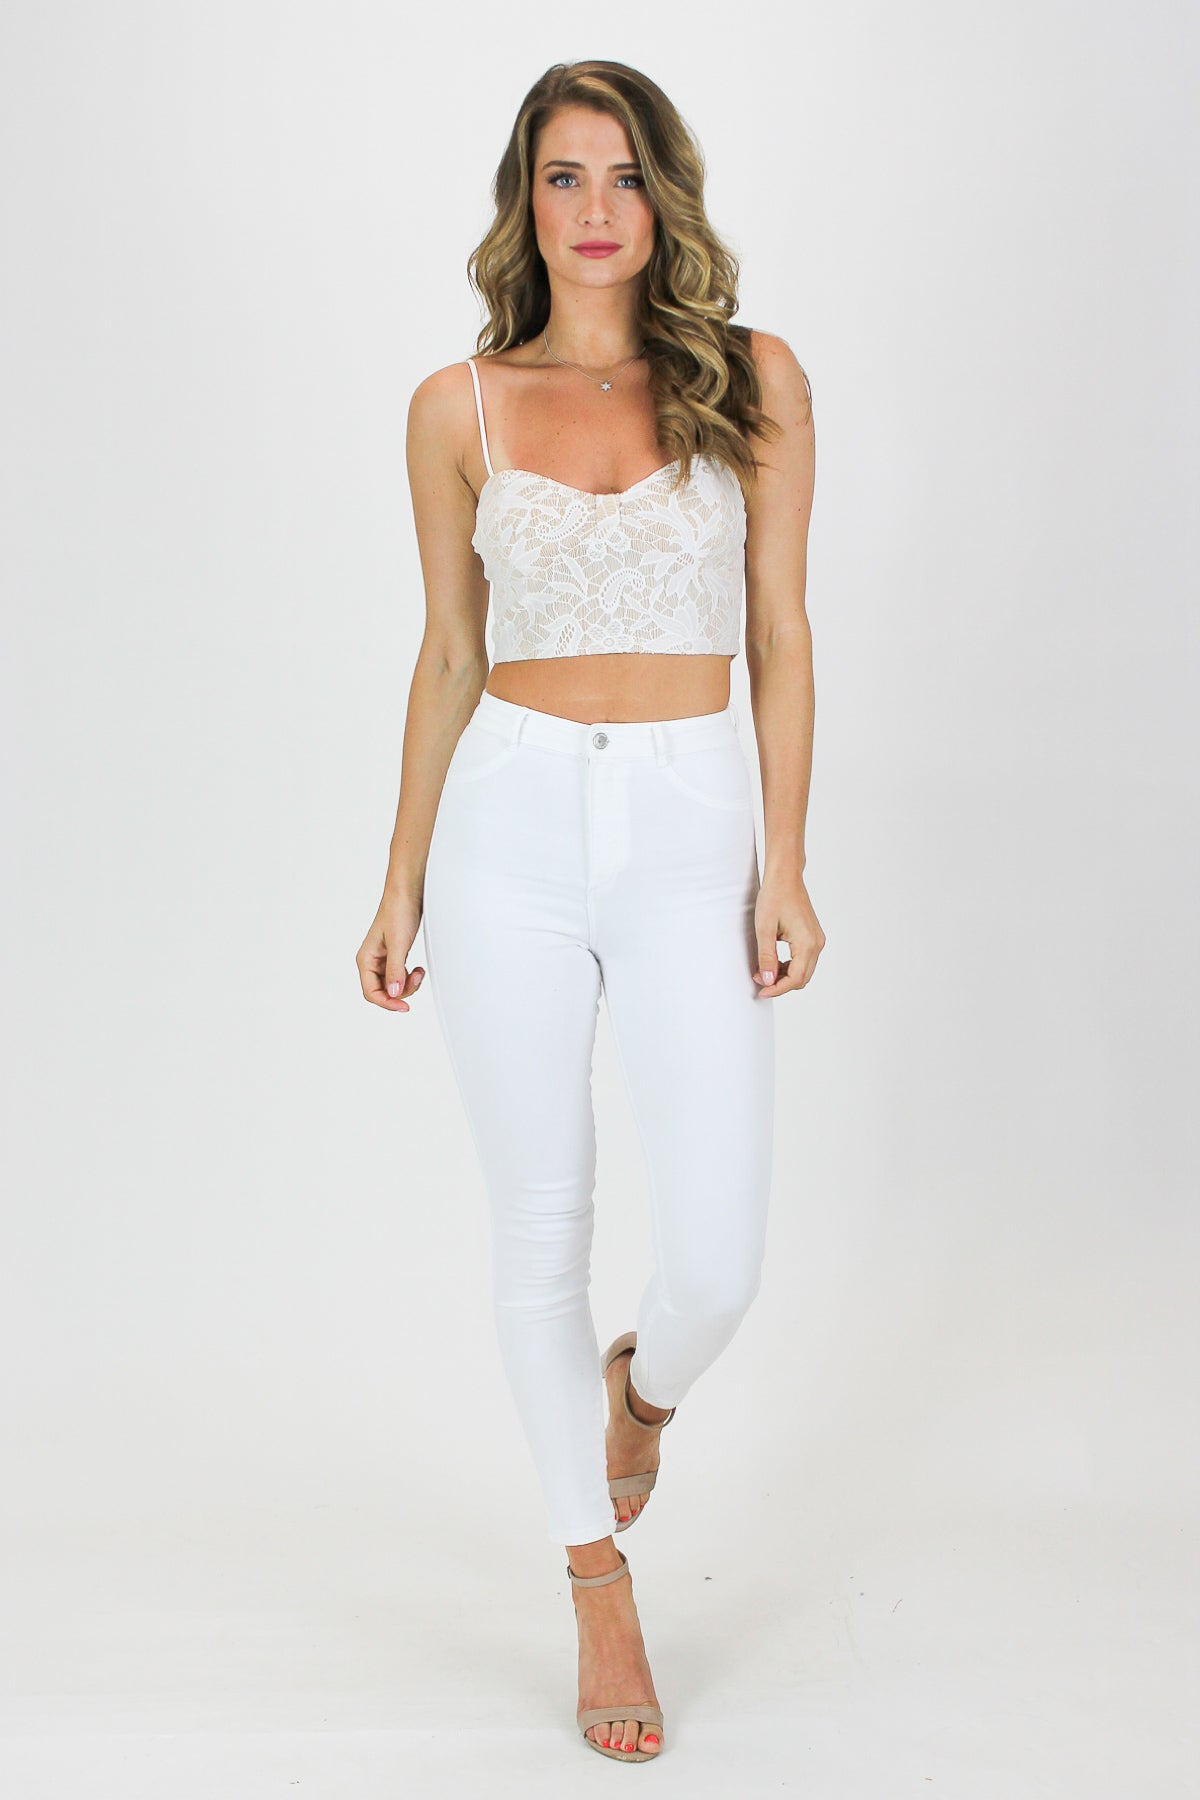 LACE CROP TANK IN WHITE / FINAL CLEARANCE